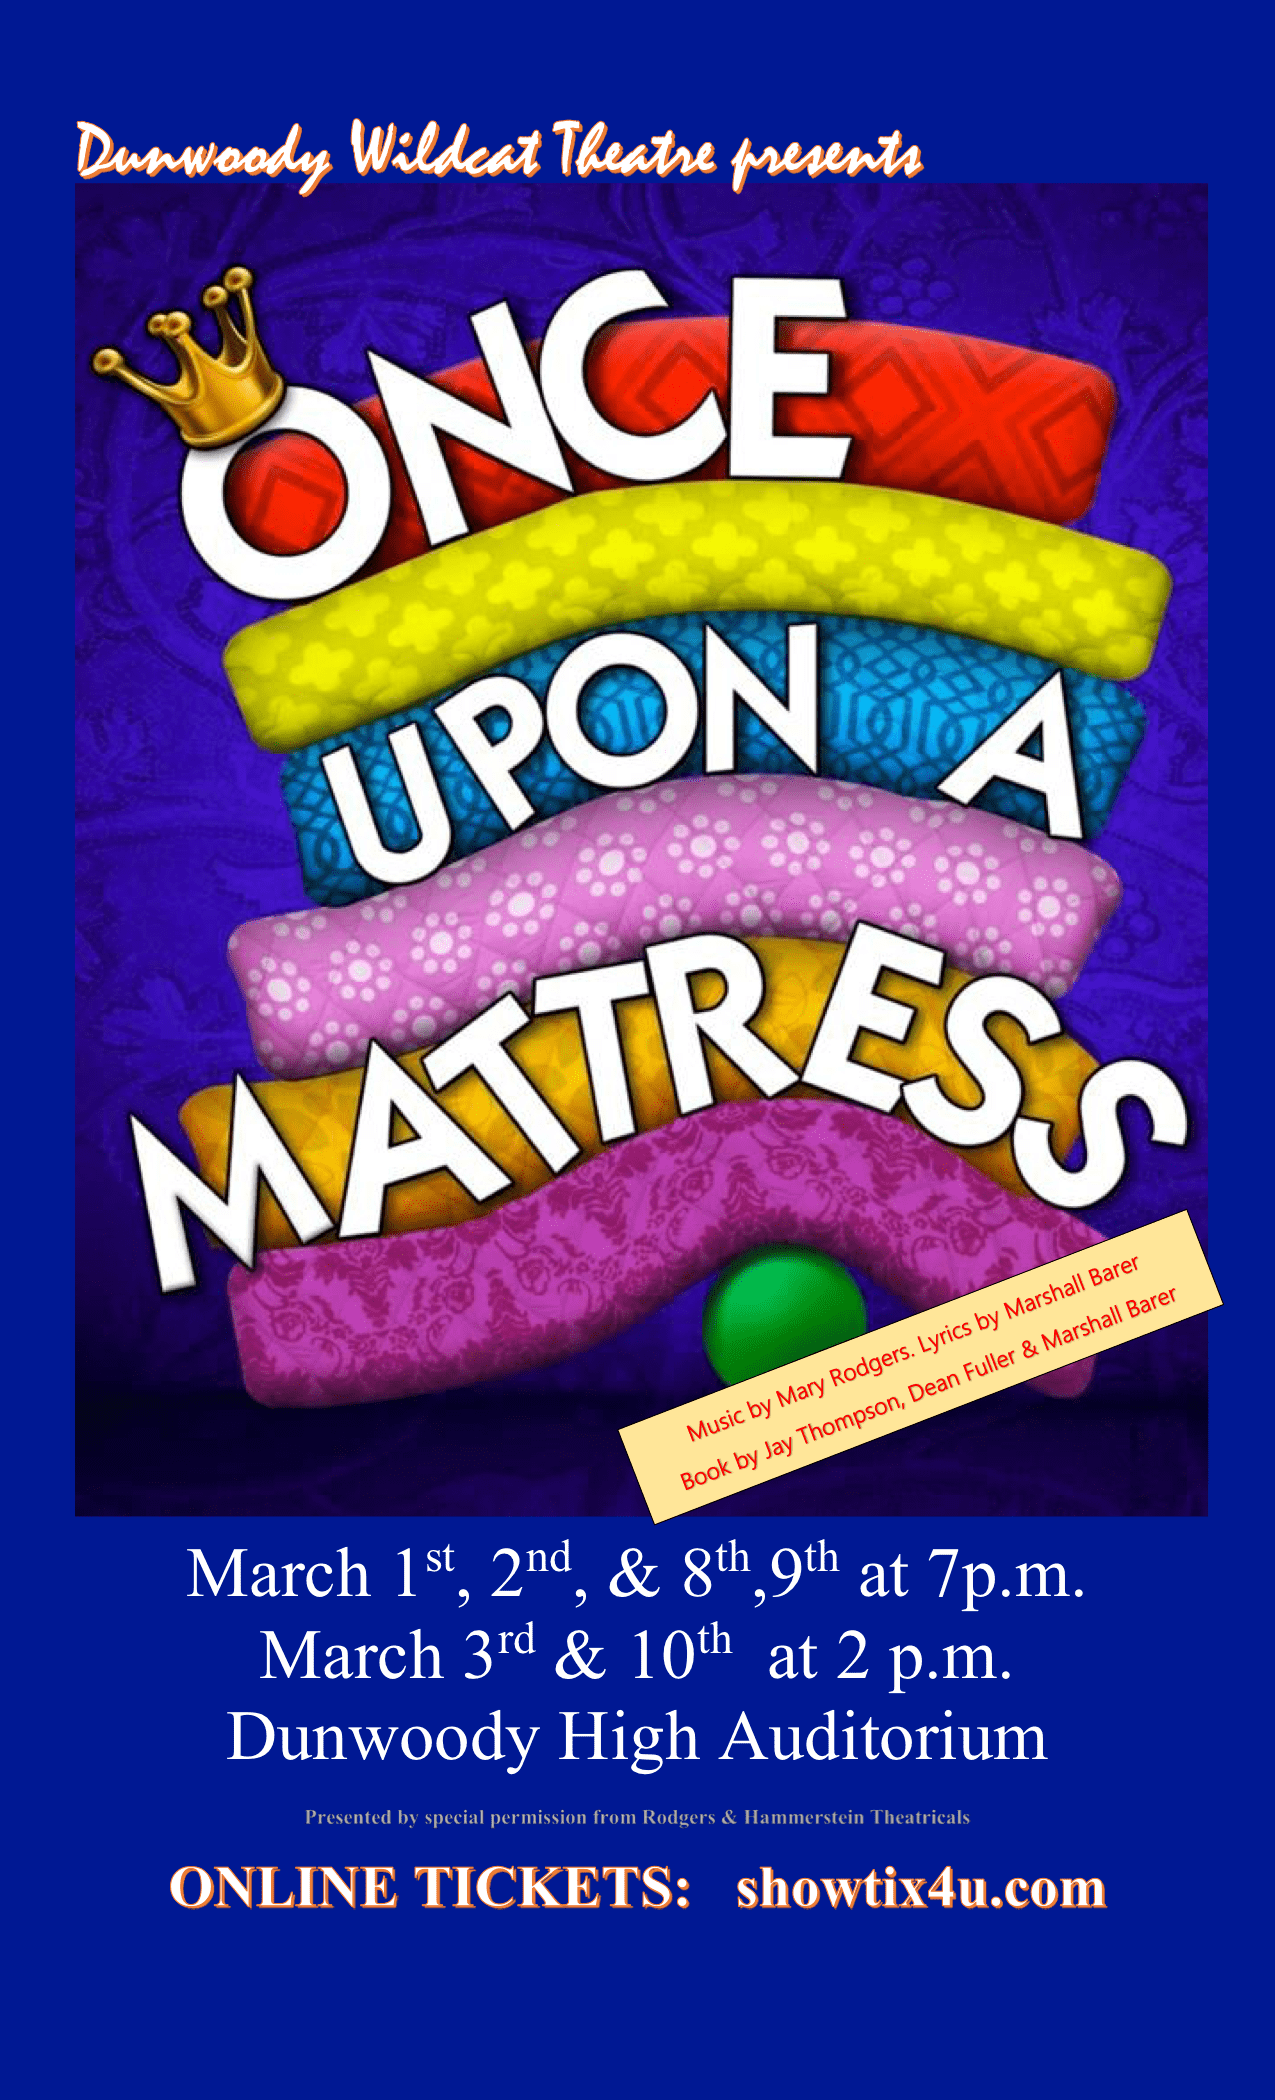 Dunwoody Wildcat Theatre presents Once Upon a Mattress